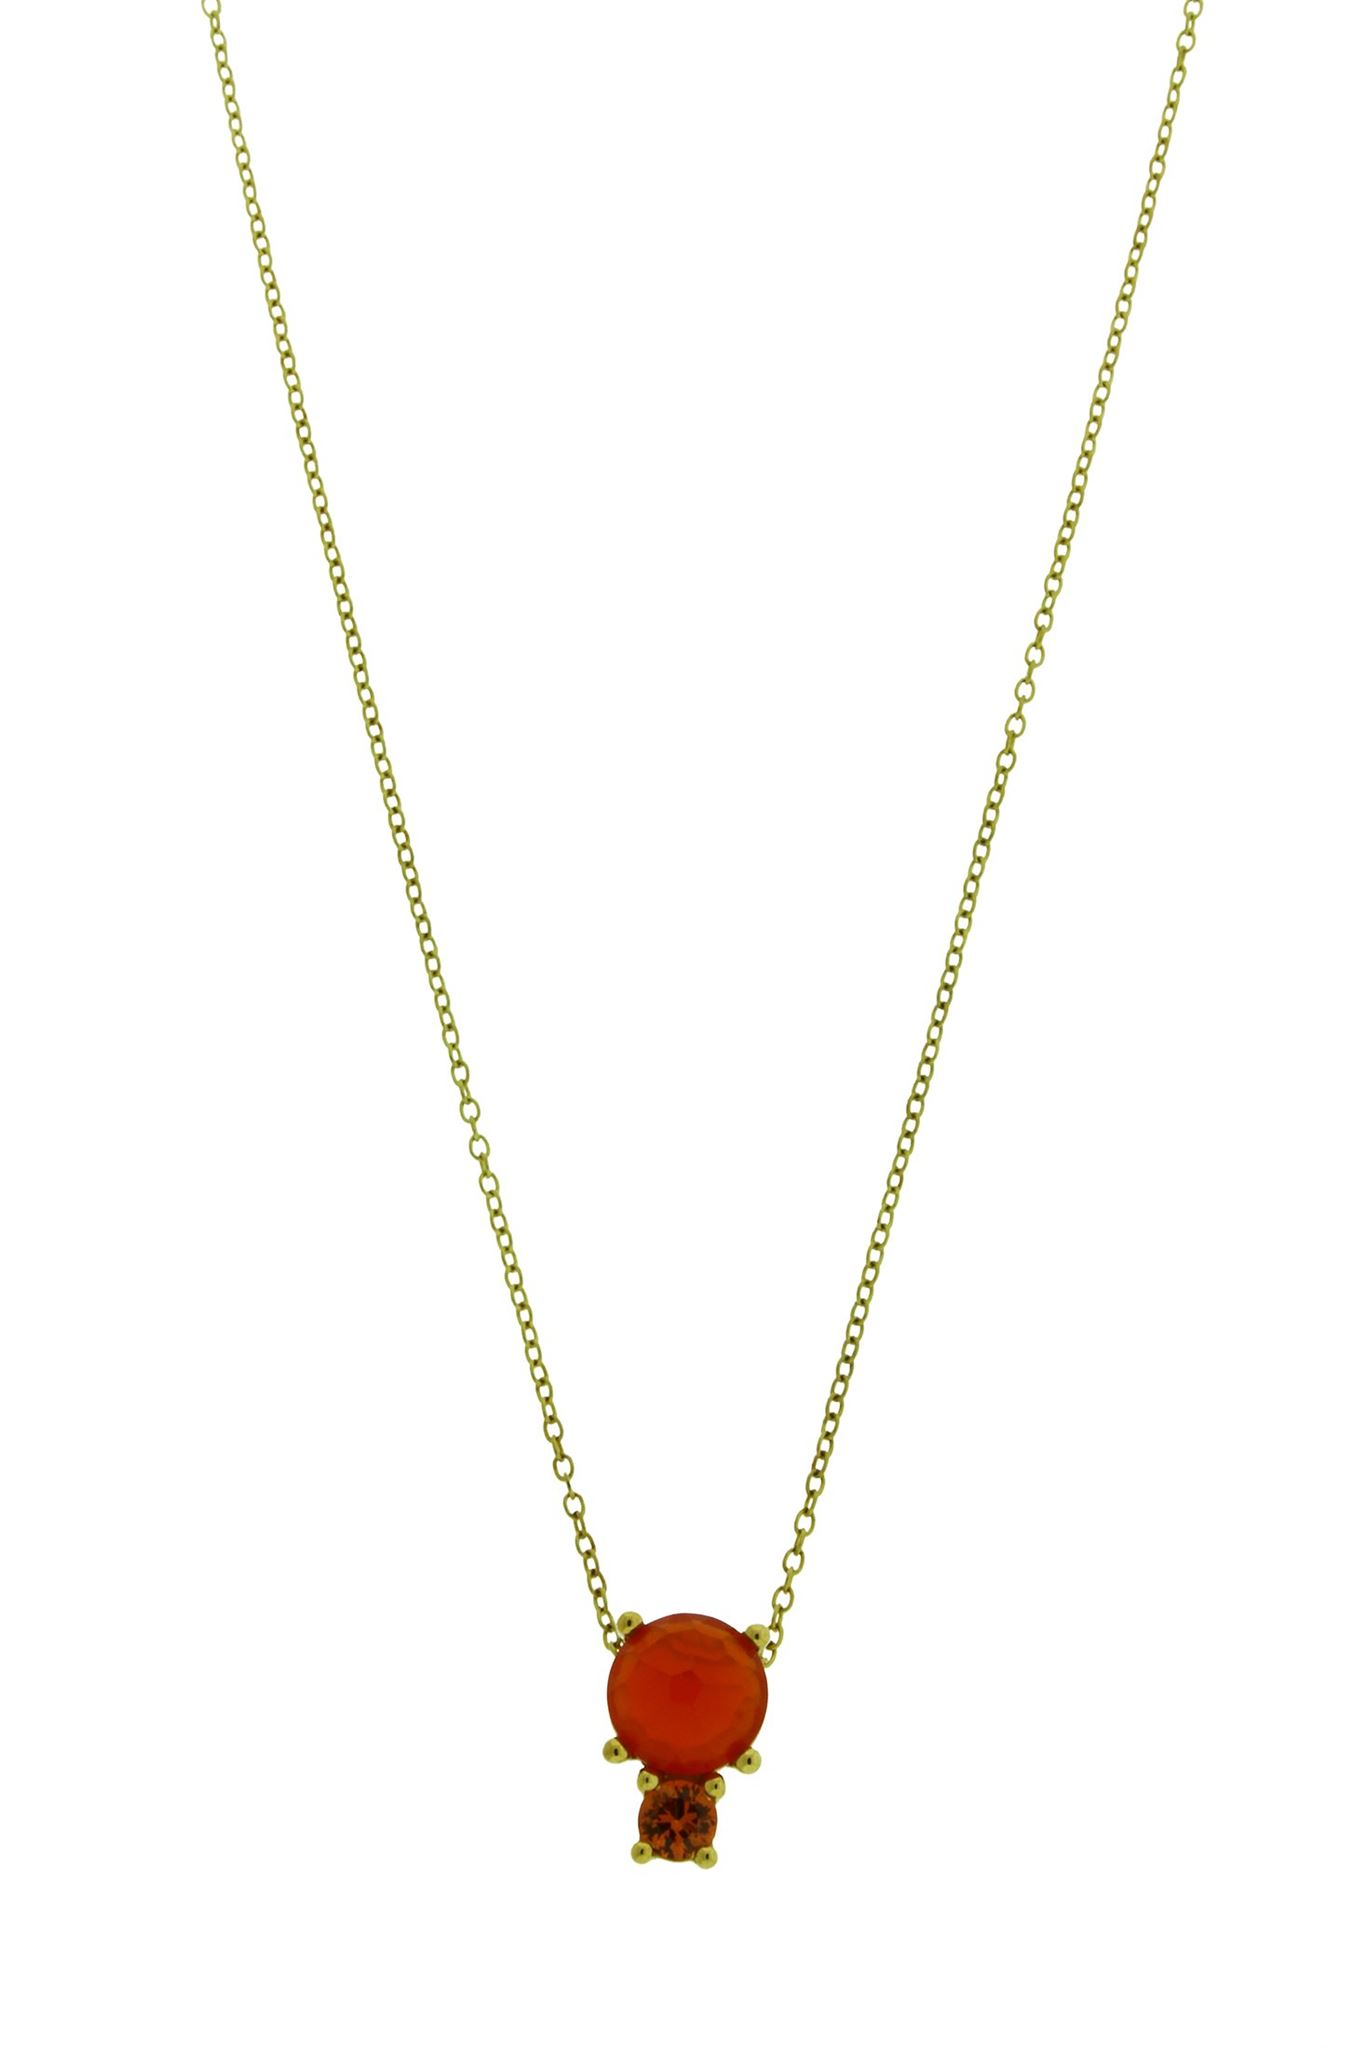 Ippolita 18k yellow gold lollipop carnelian orange sapphire ippolita 18k yellow gold lollipop carnelian orange sapphire pendant necklace aloadofball Gallery